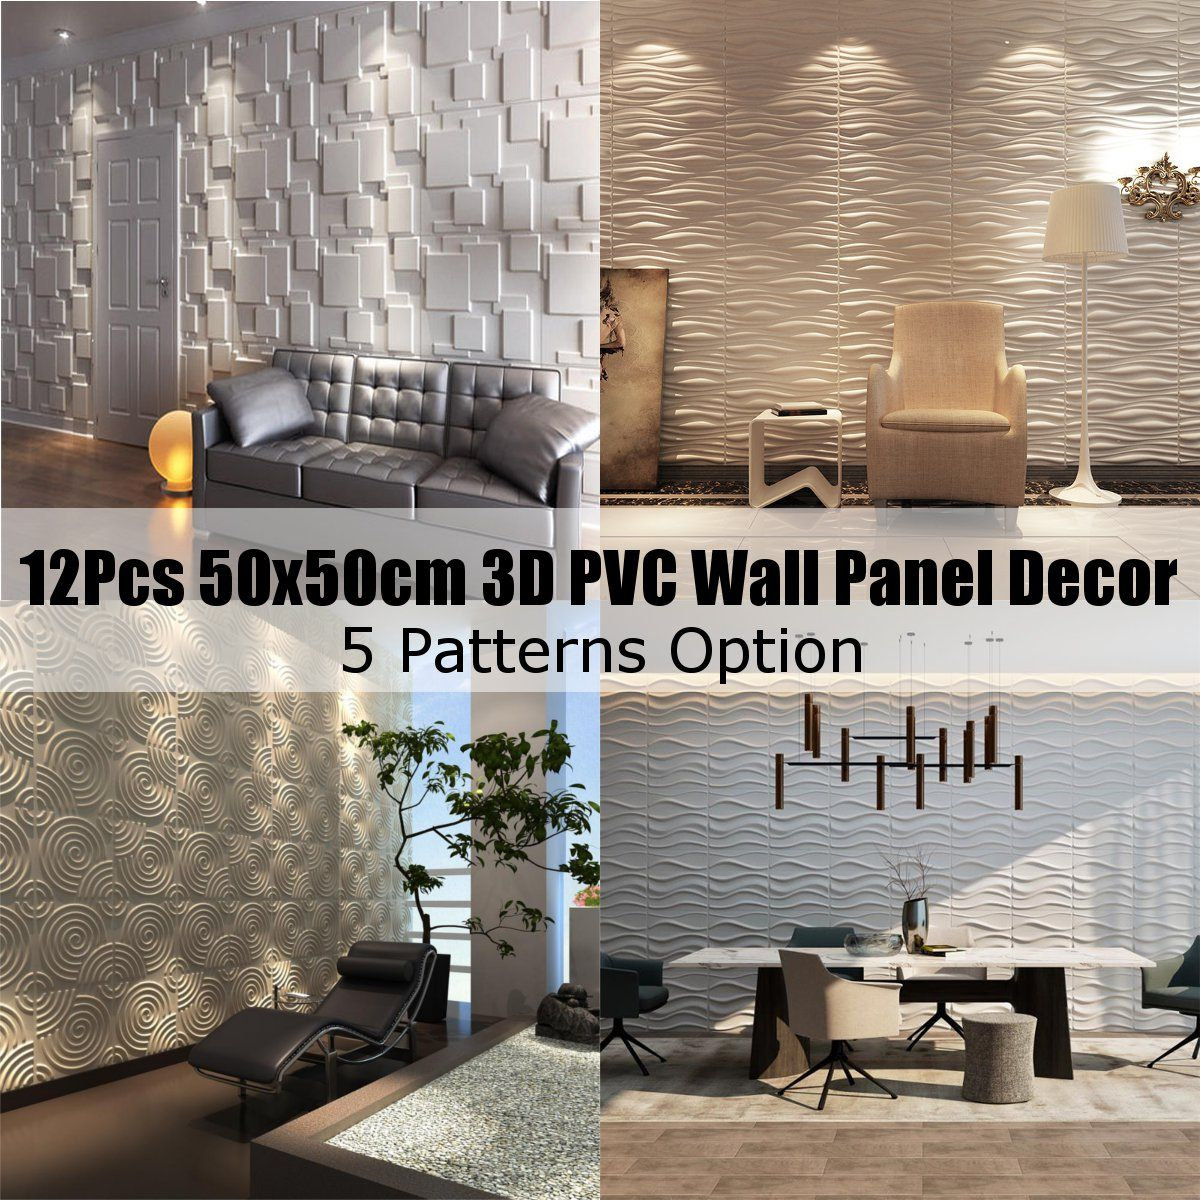 12PCS 3D PVC Wall Panel Flame Retardant Waterproof Wallpaper Living Room Decal Home Decor 50x50cm Embossed Wallpapers Stickers